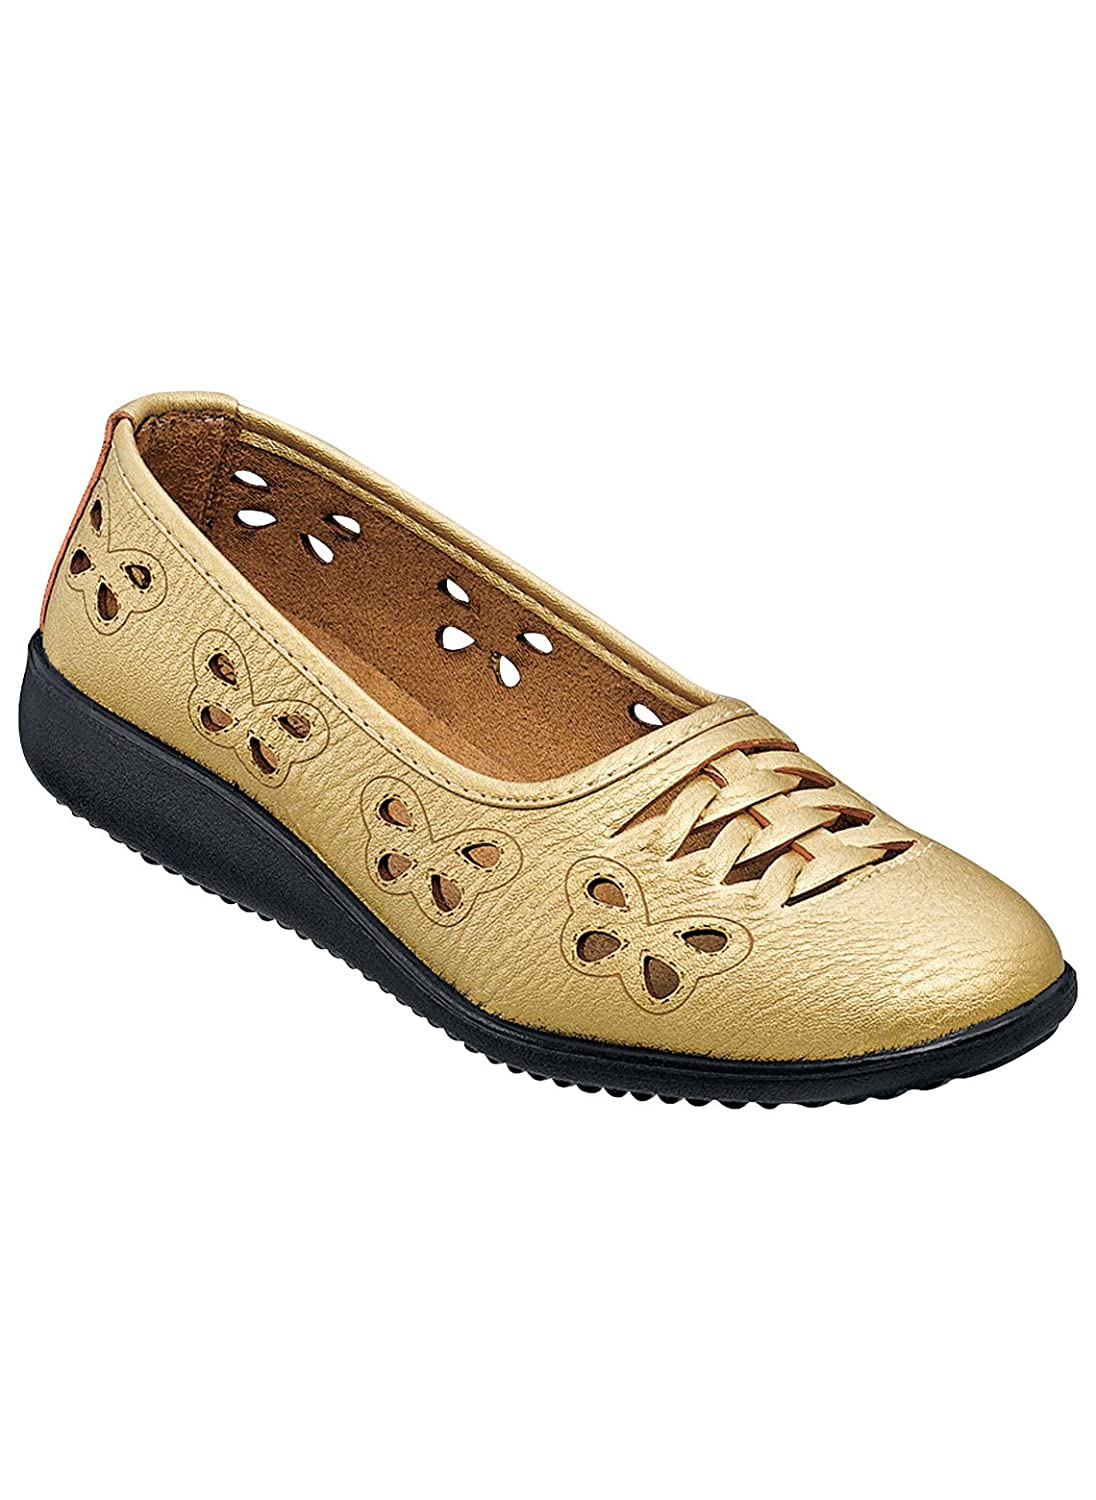 Wide Gold Size 9 Carol Wright Gifts Butterfly Flats